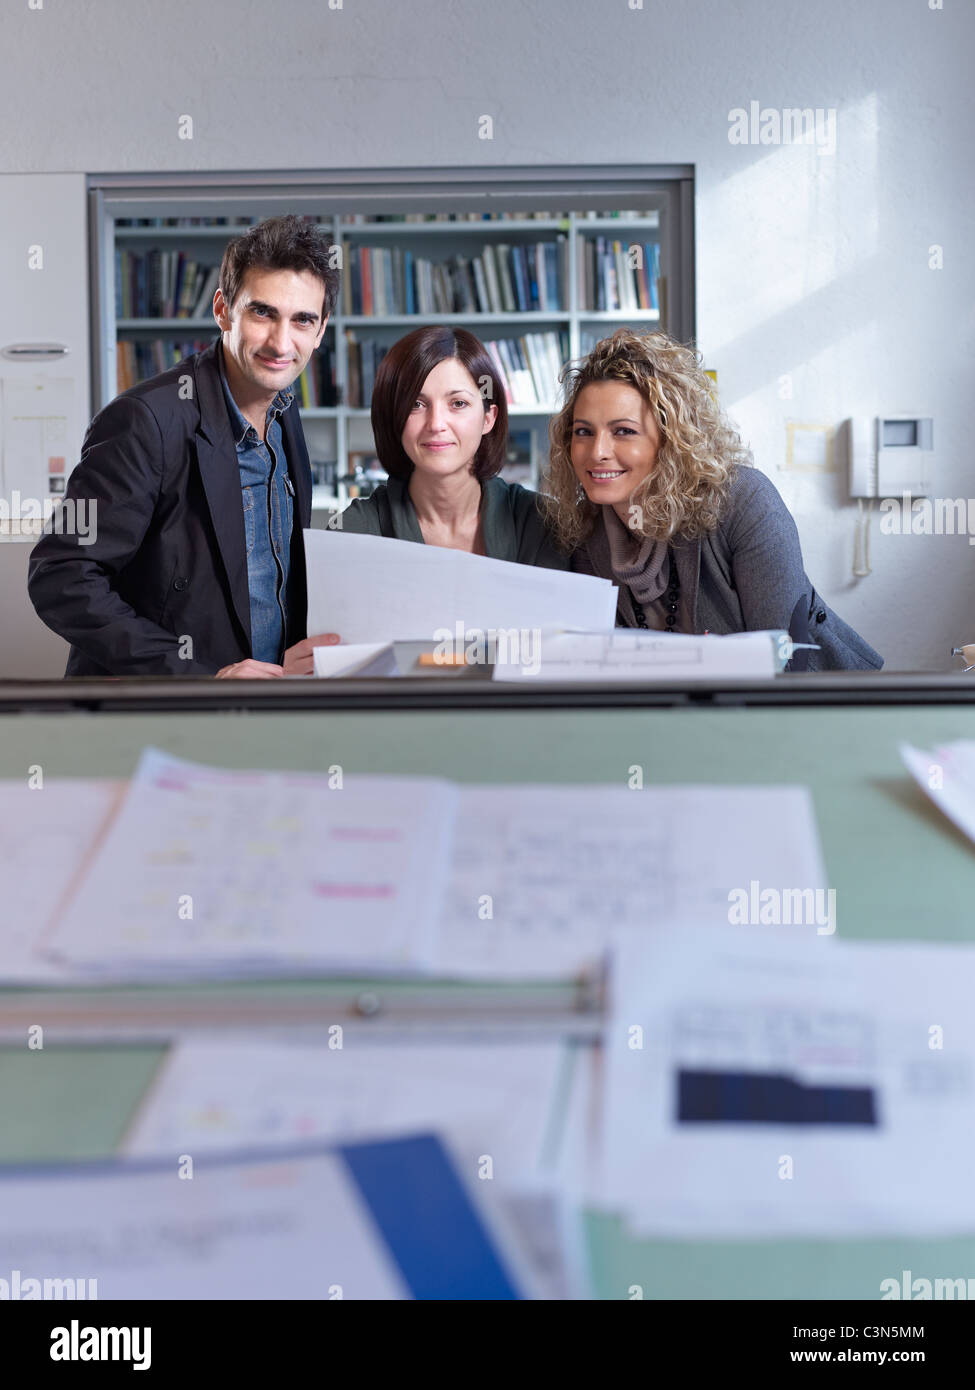 Les collègues working in office Photo Stock